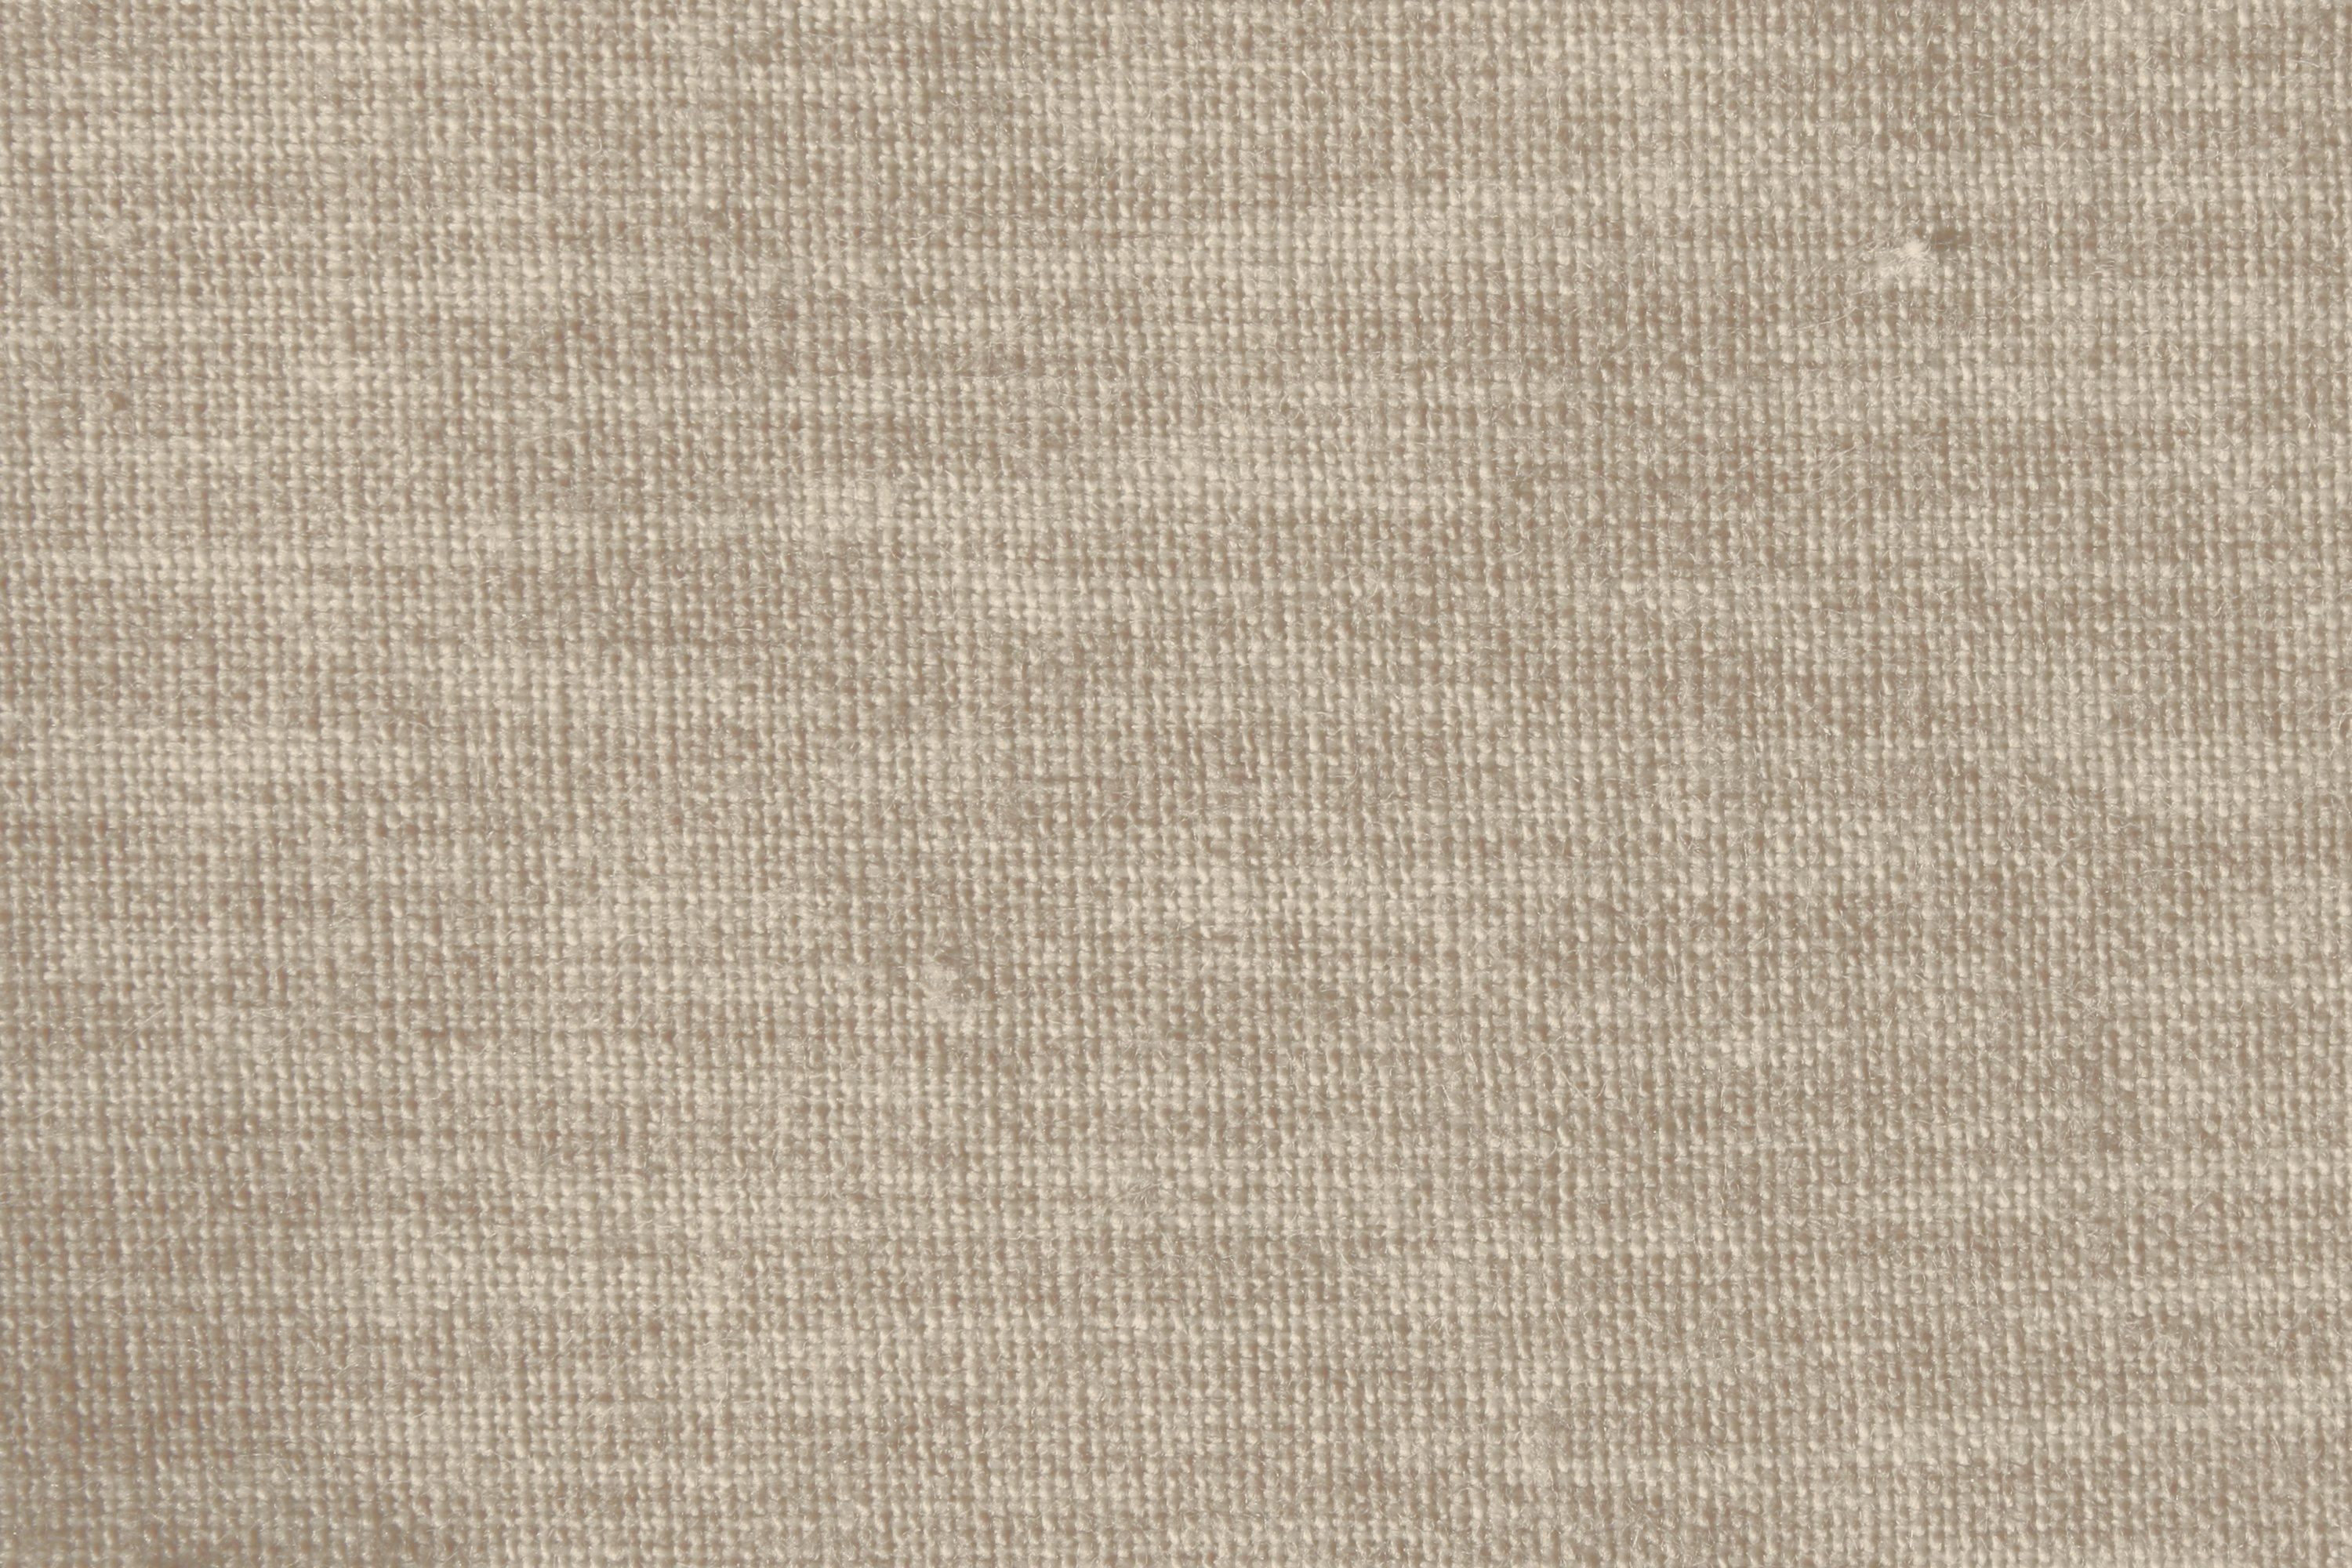 Beige Woven Fabric Close Up Texture Picture | Free Photograph ...